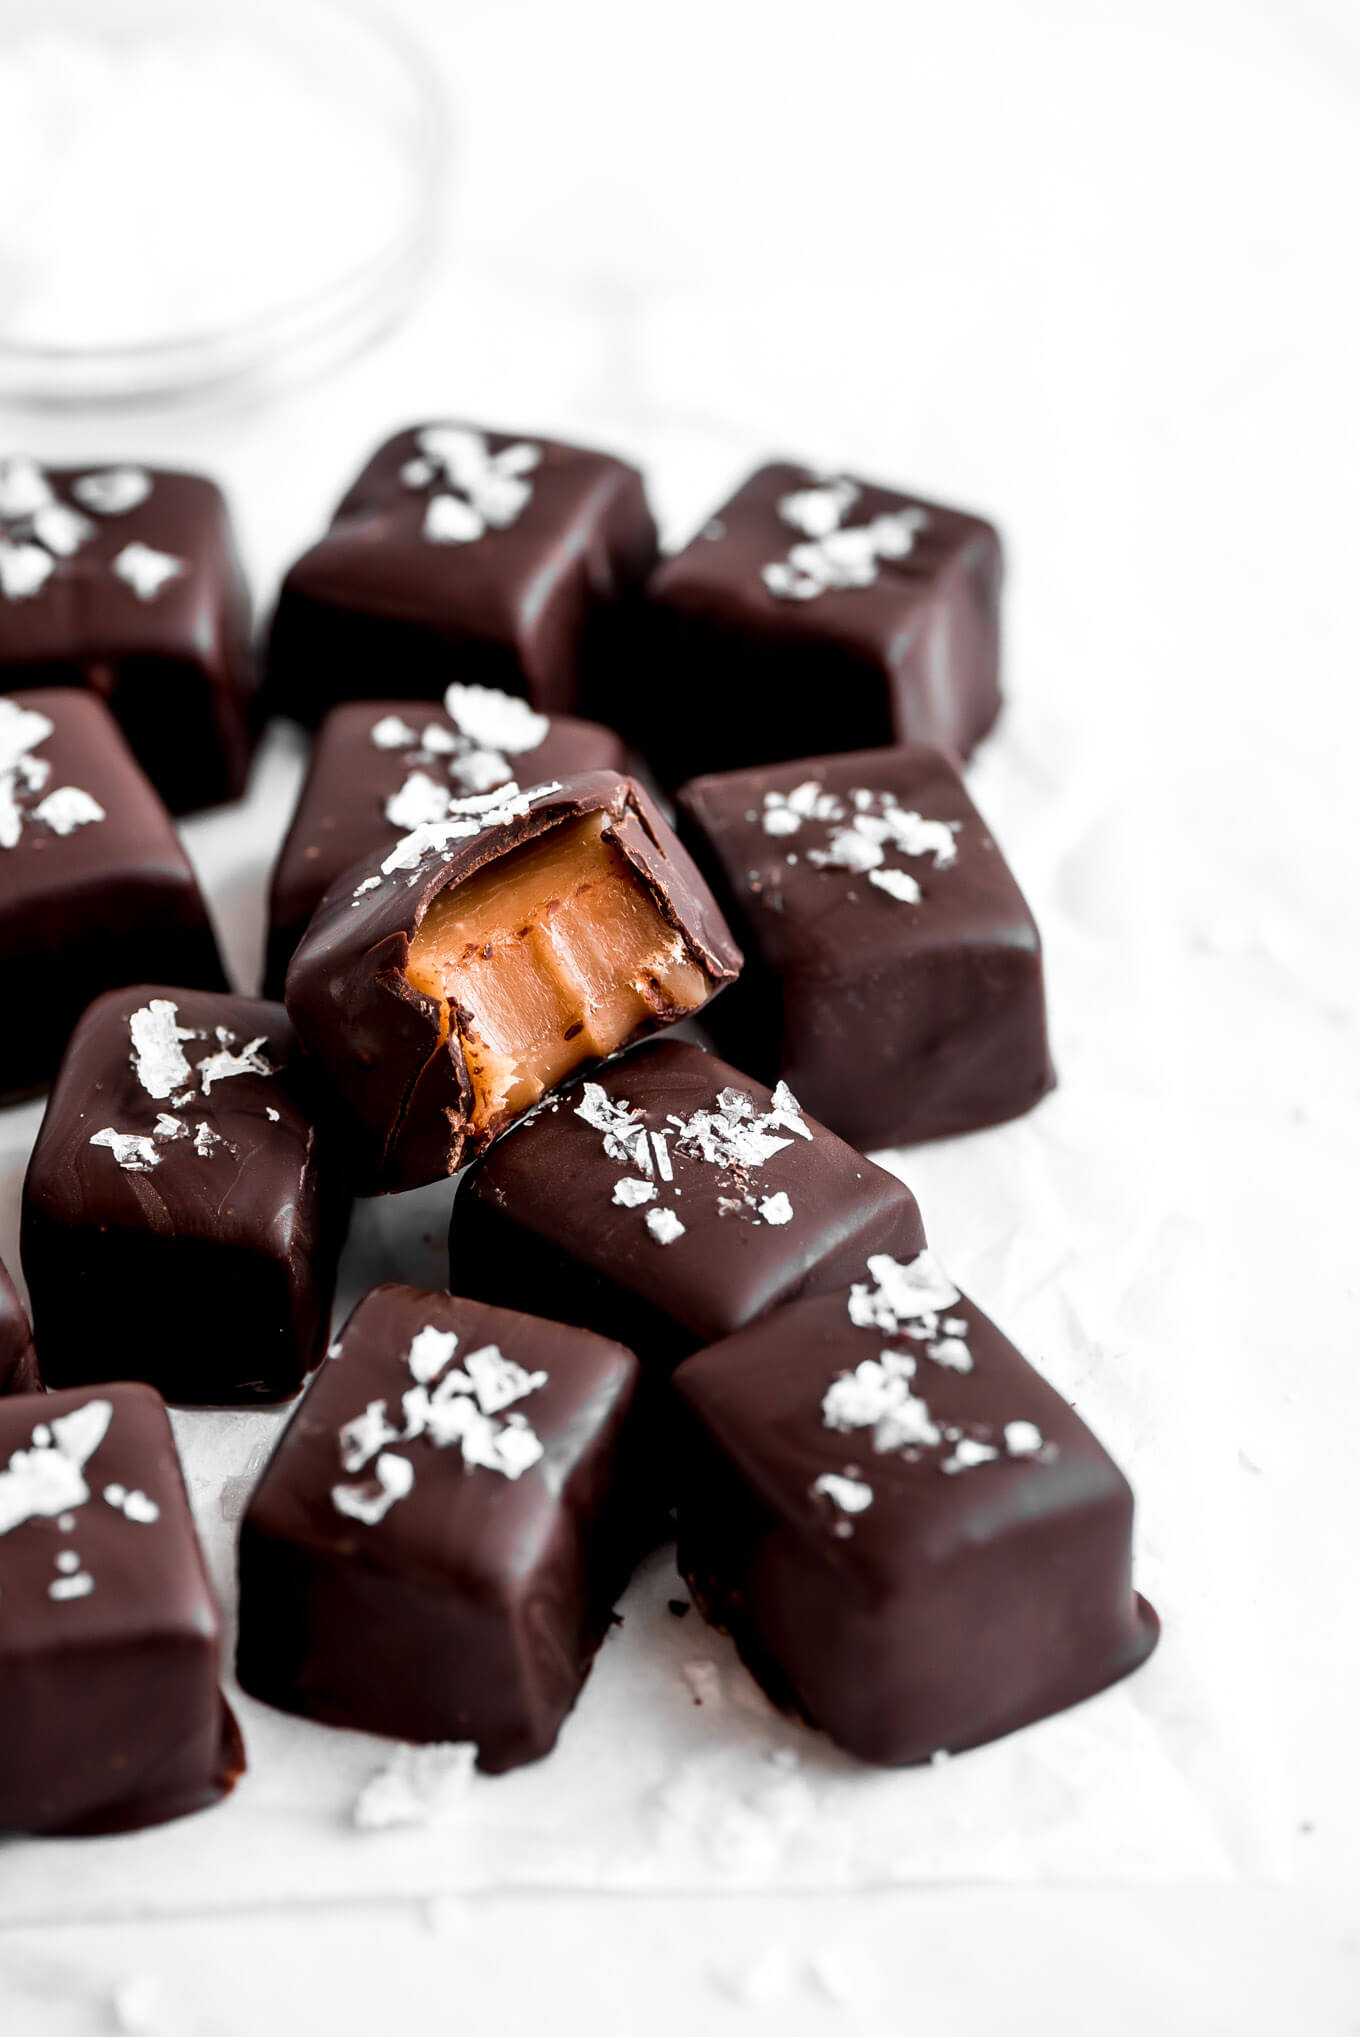 Several chocolate coated caramels with sea salt on top and one of them with a bite taken out of the corner showing the caramel inside.